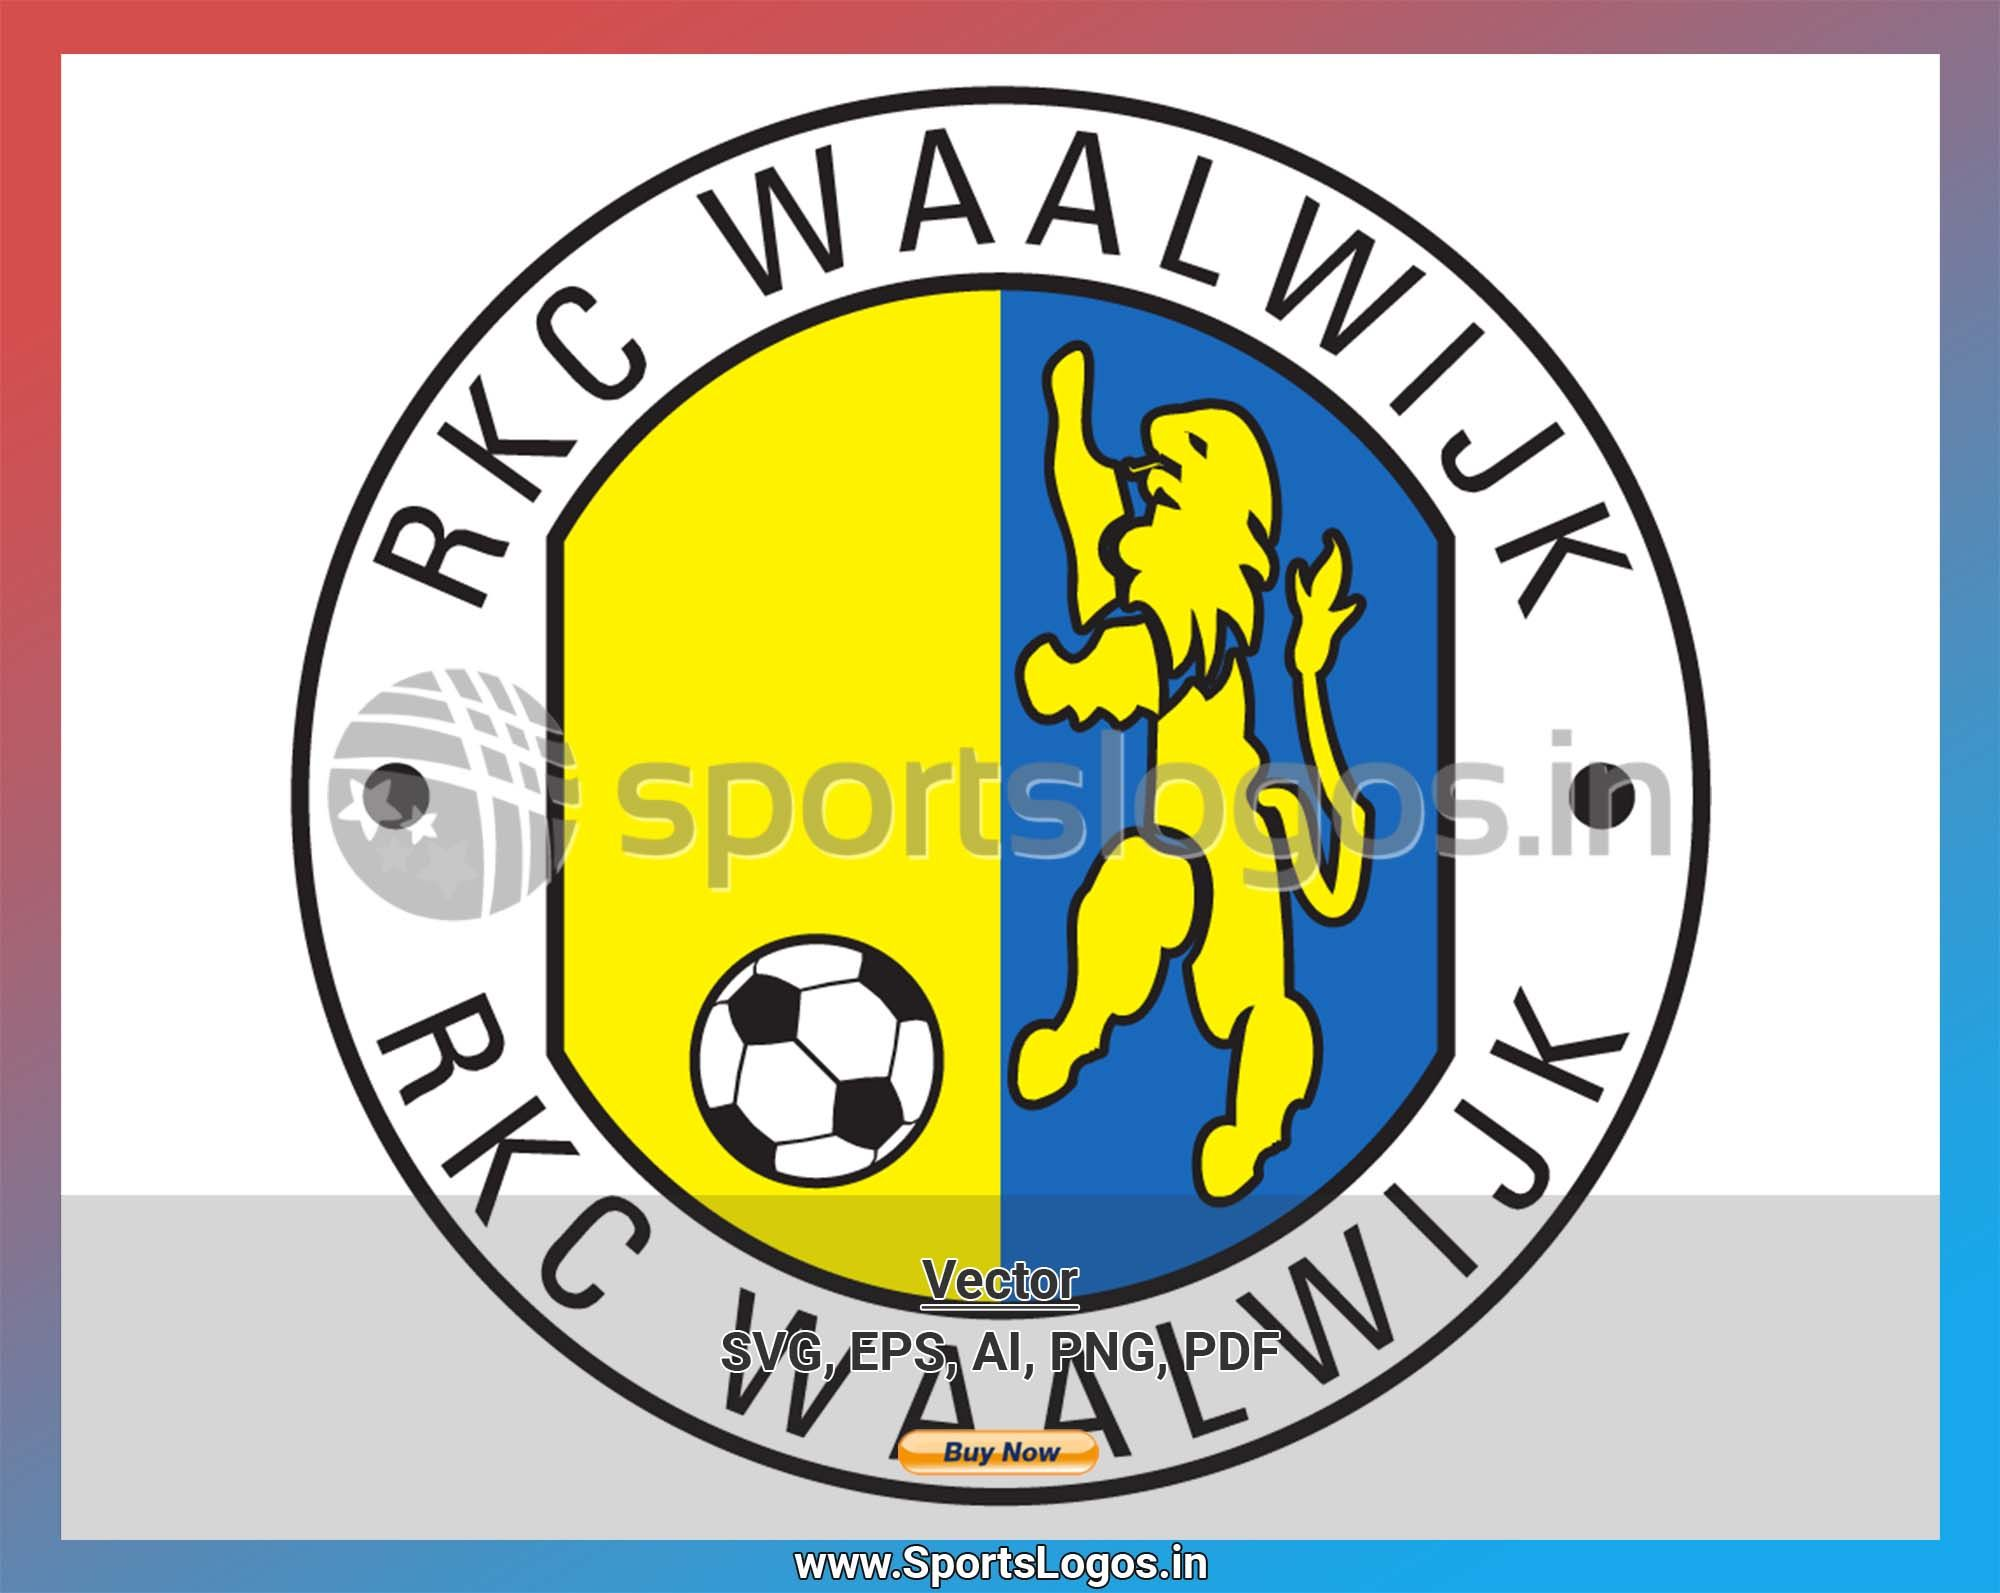 Rkc Waalwijk Soccer Sports Vector Svg Logo In 5 Formats Spln003654 Sports Logos Embroidery Vector For Nfl Nba Nhl Mlb Milb And More Sports Logo Football Logo Soccer